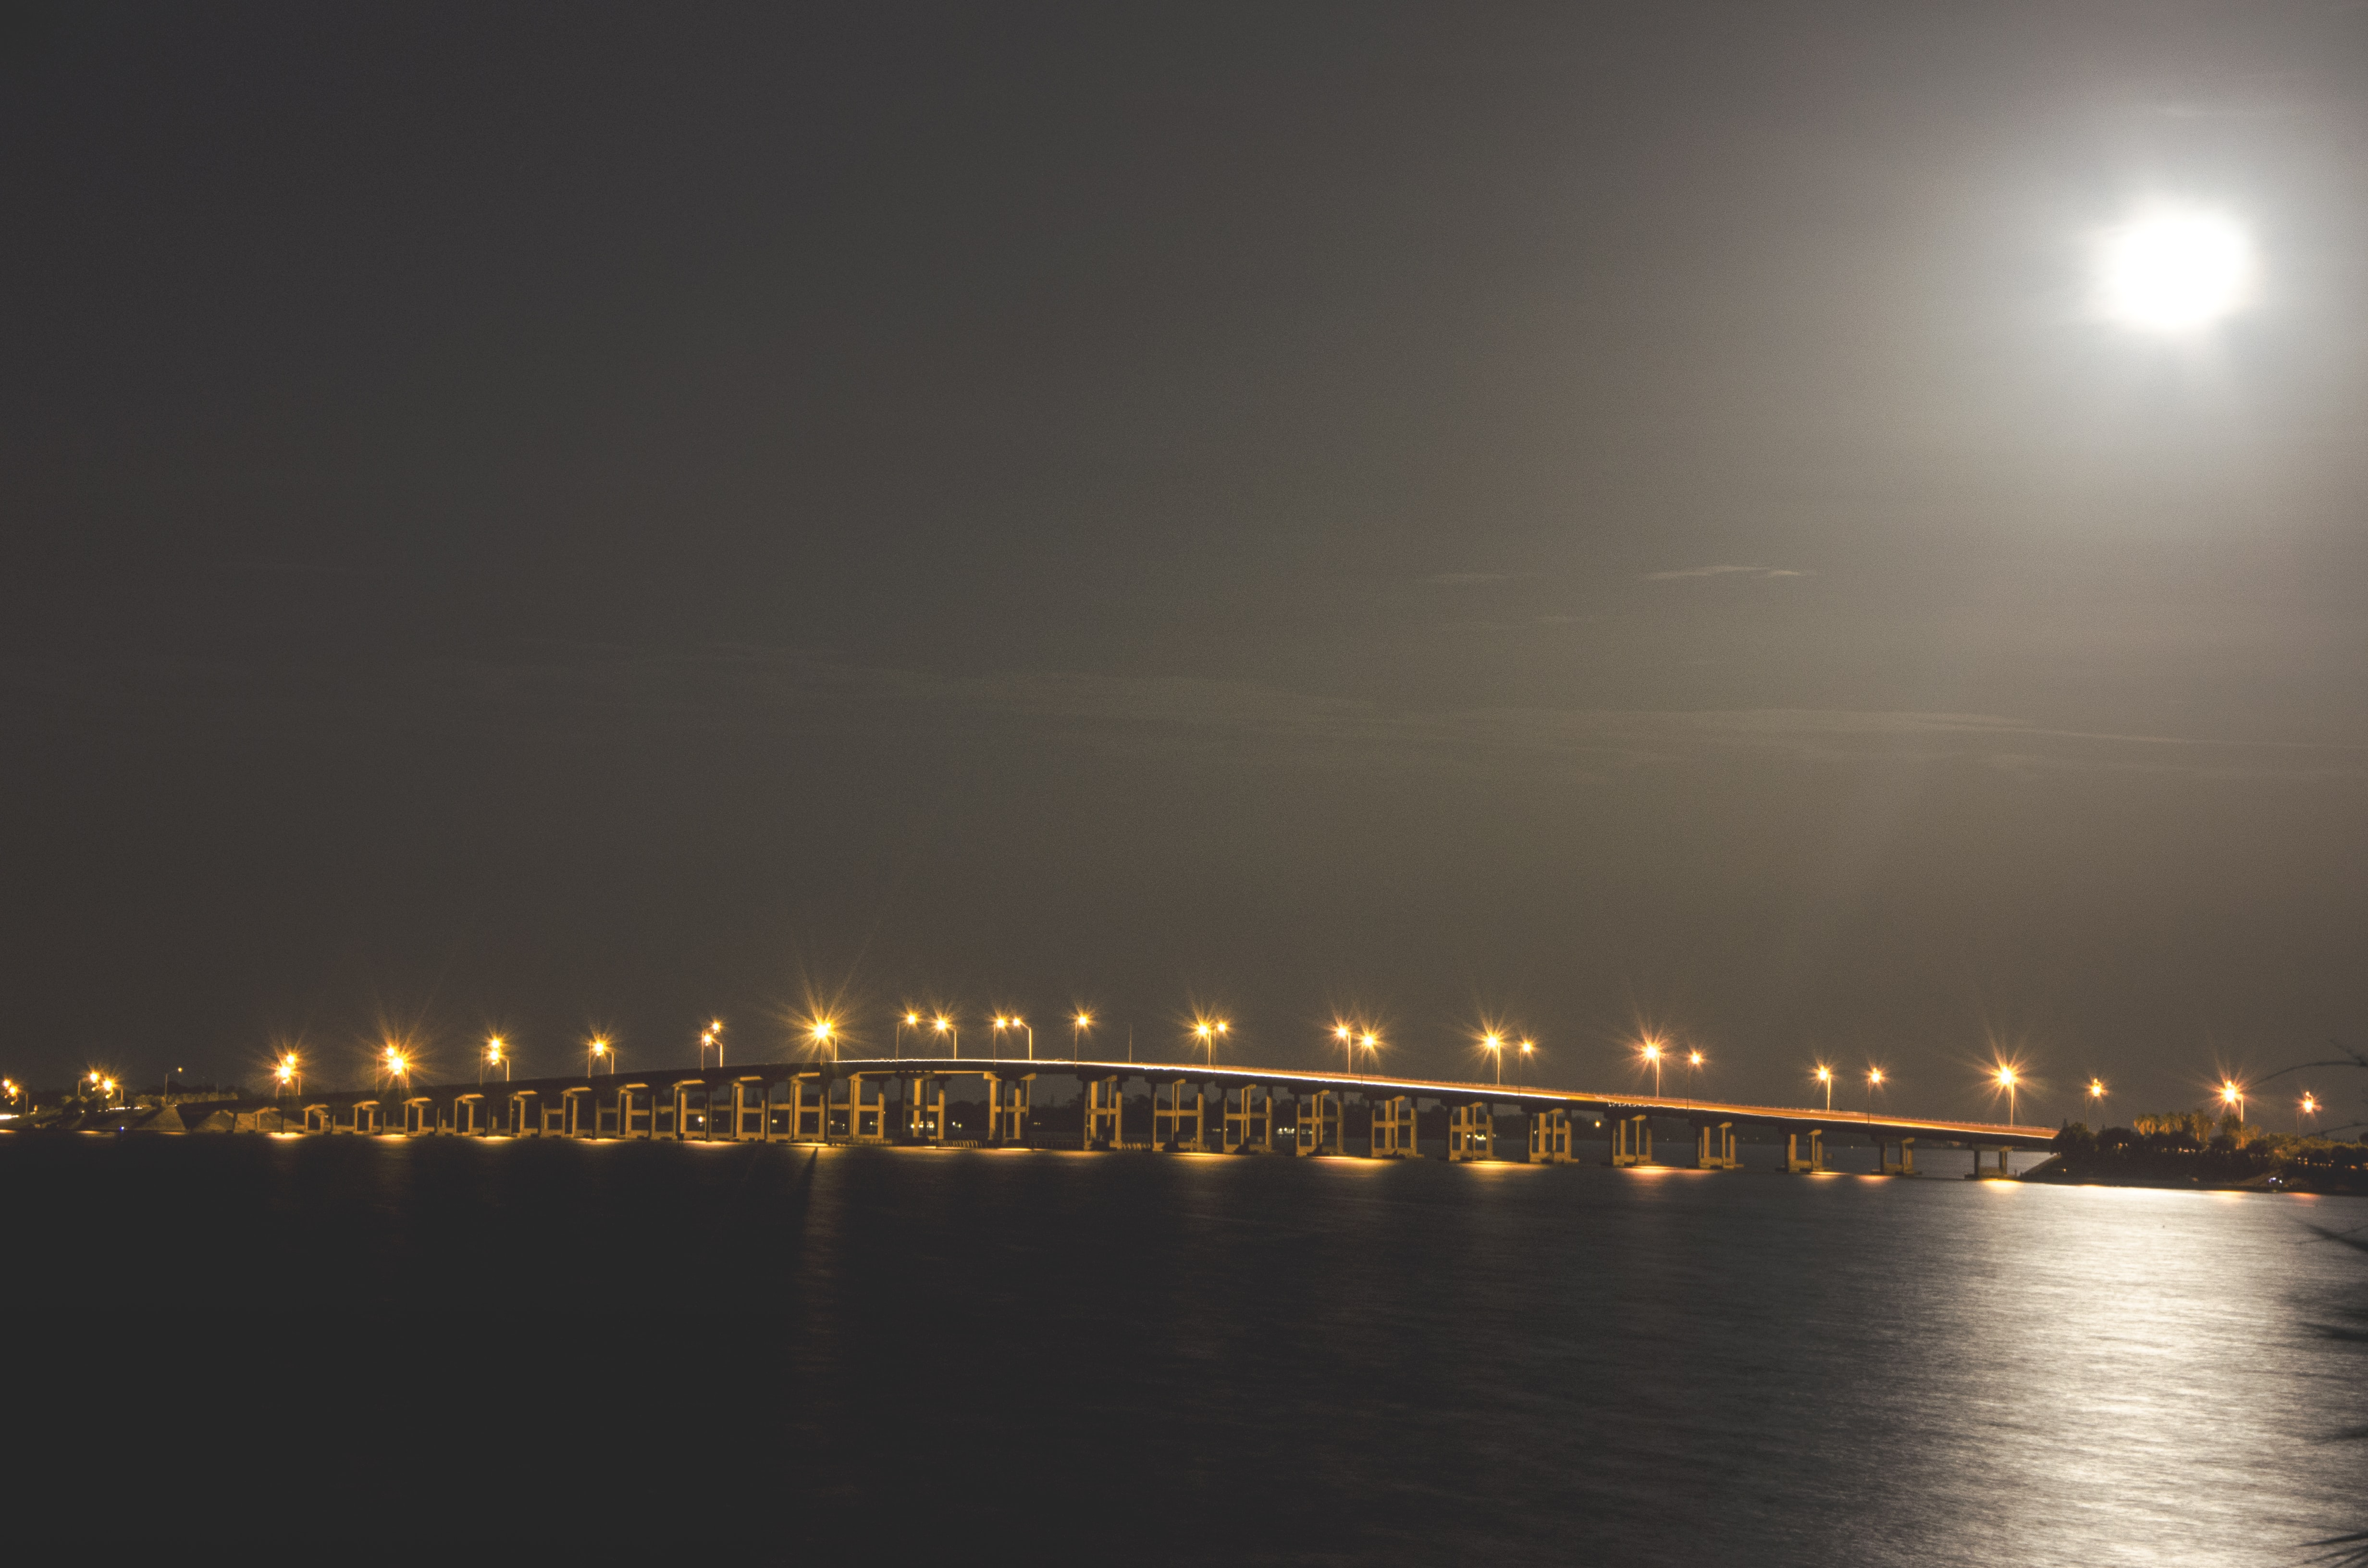 A well-lit bridge at night across the waters under the bright moonlight